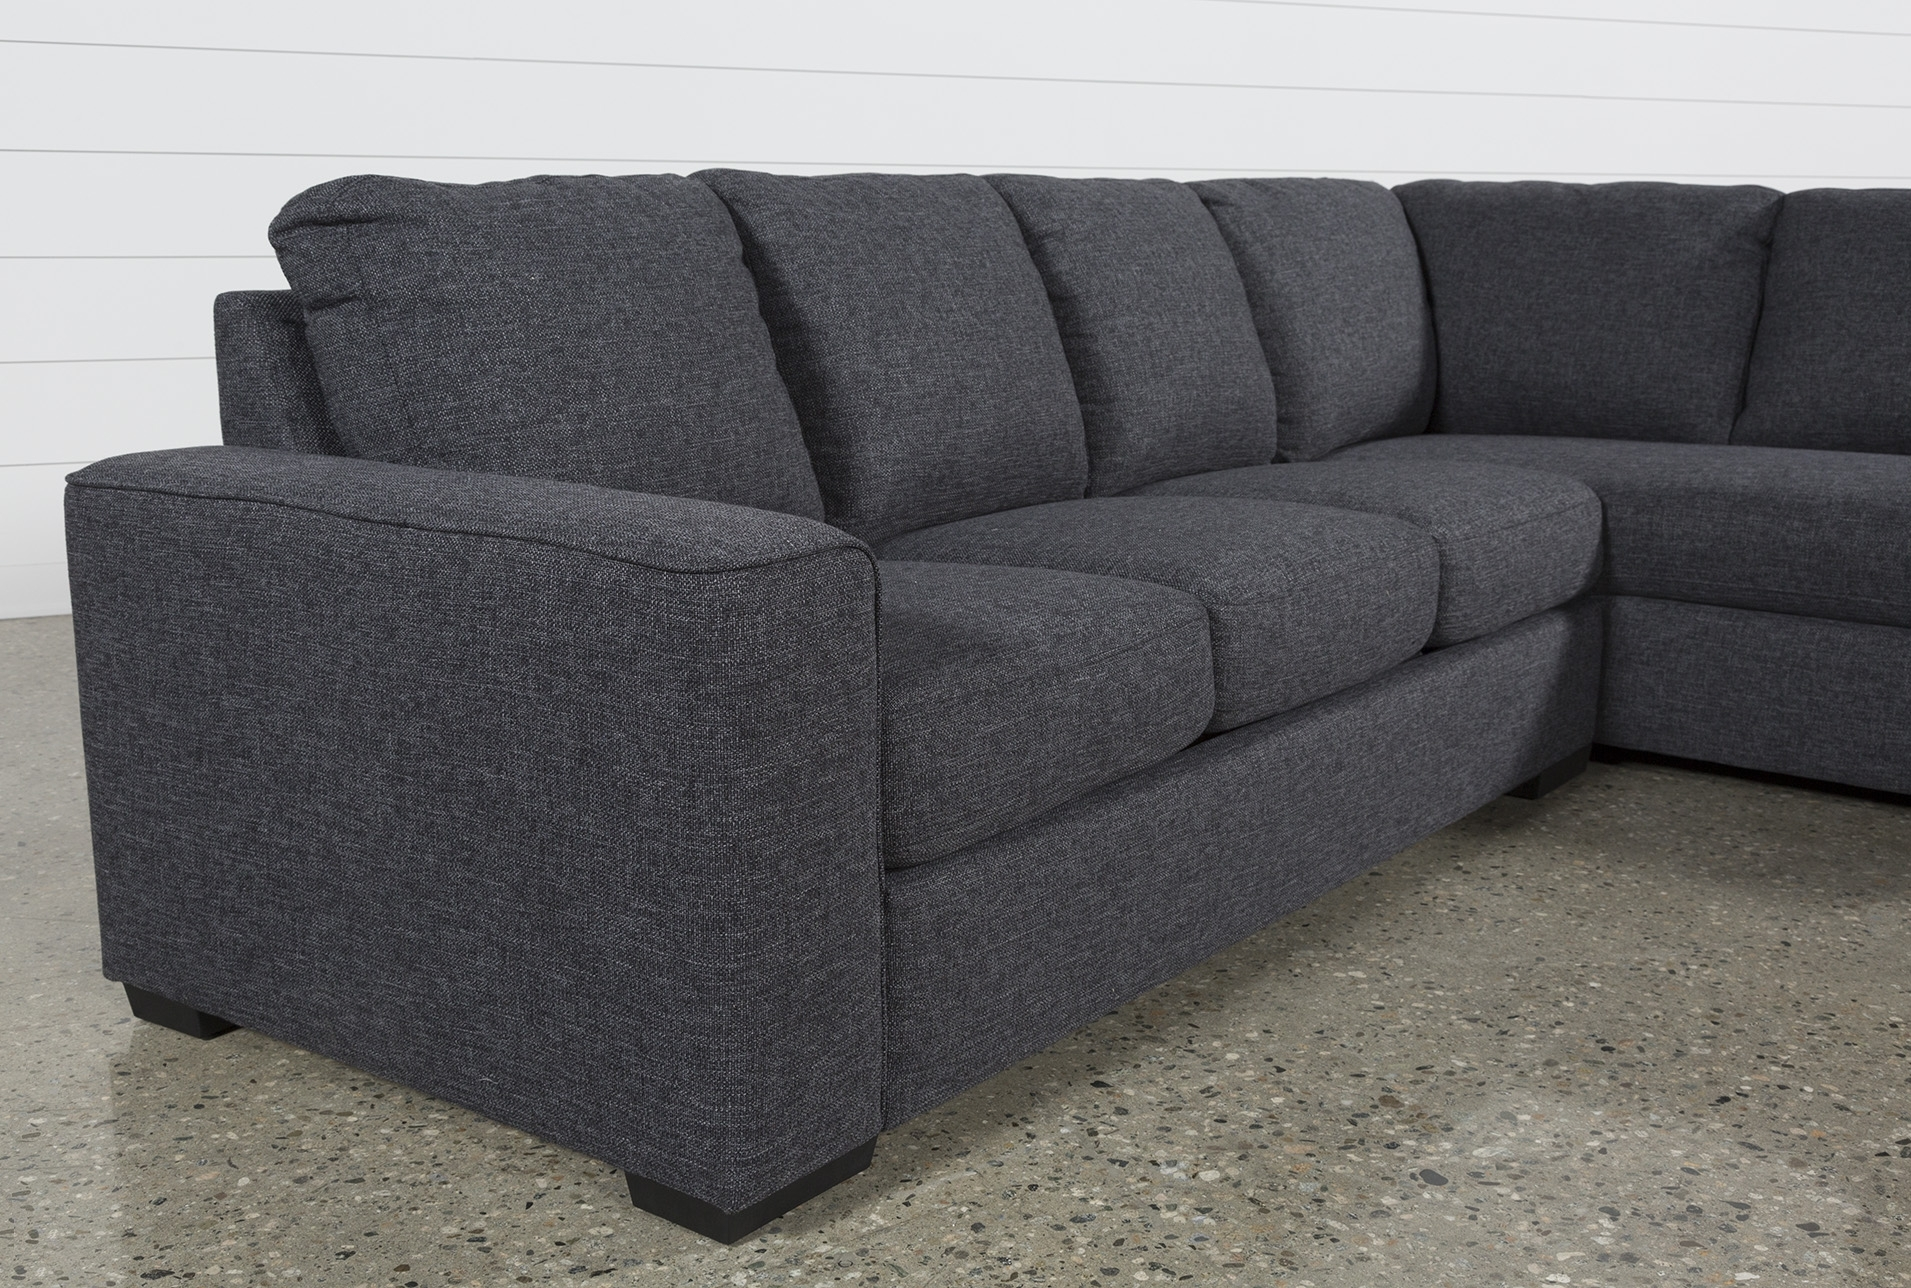 Lucy Dark Grey 2 Piece Sectional W/raf Chaise | Pinterest | Dark Regarding Lucy Dark Grey 2 Piece Sectionals With Laf Chaise (Image 15 of 25)